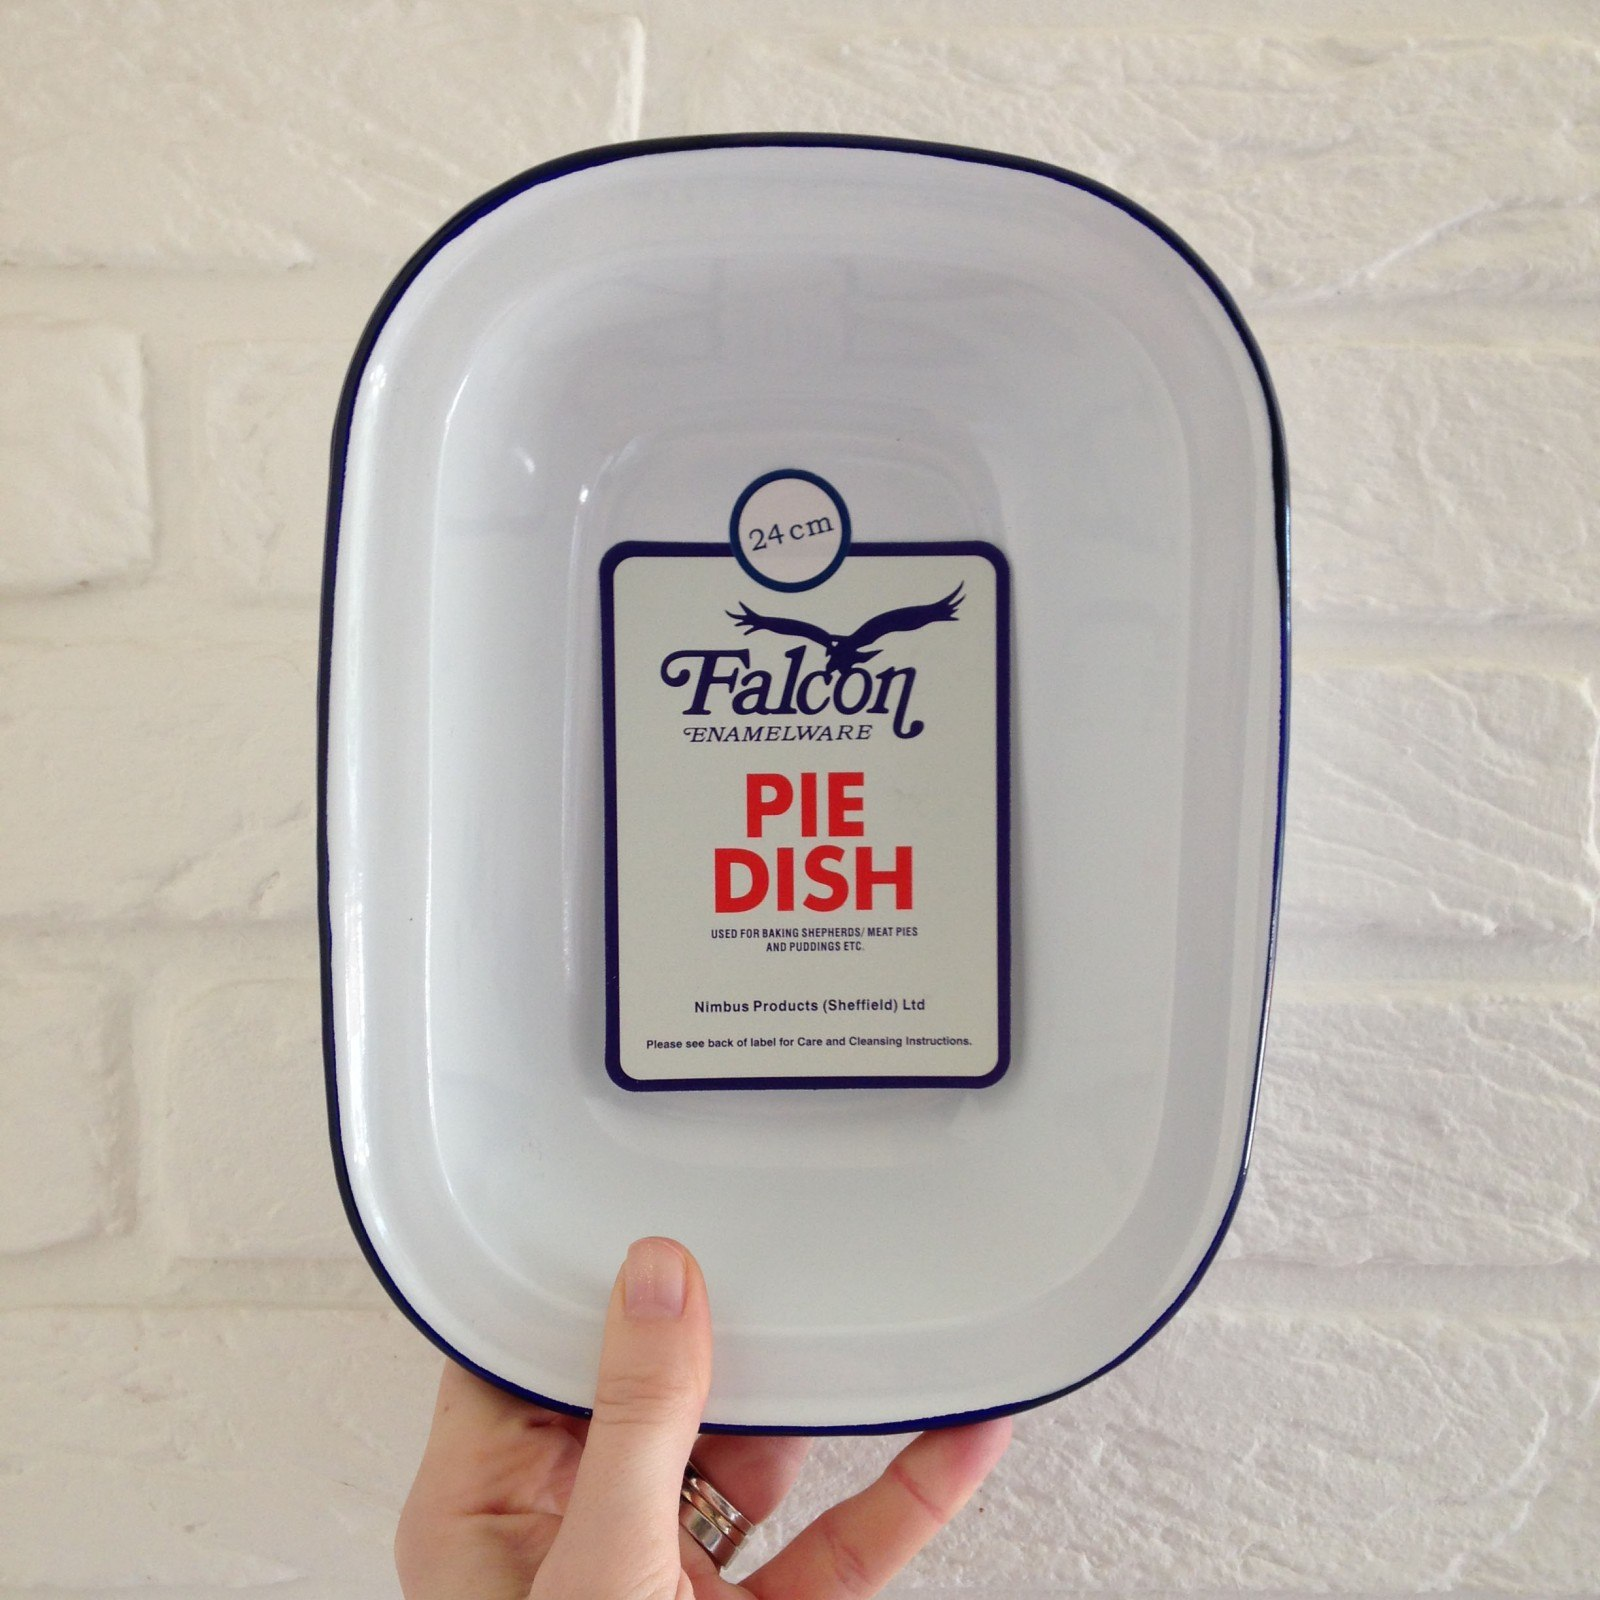 falcon-enamelware-traditional-english-pie-kitchenalia.jpg